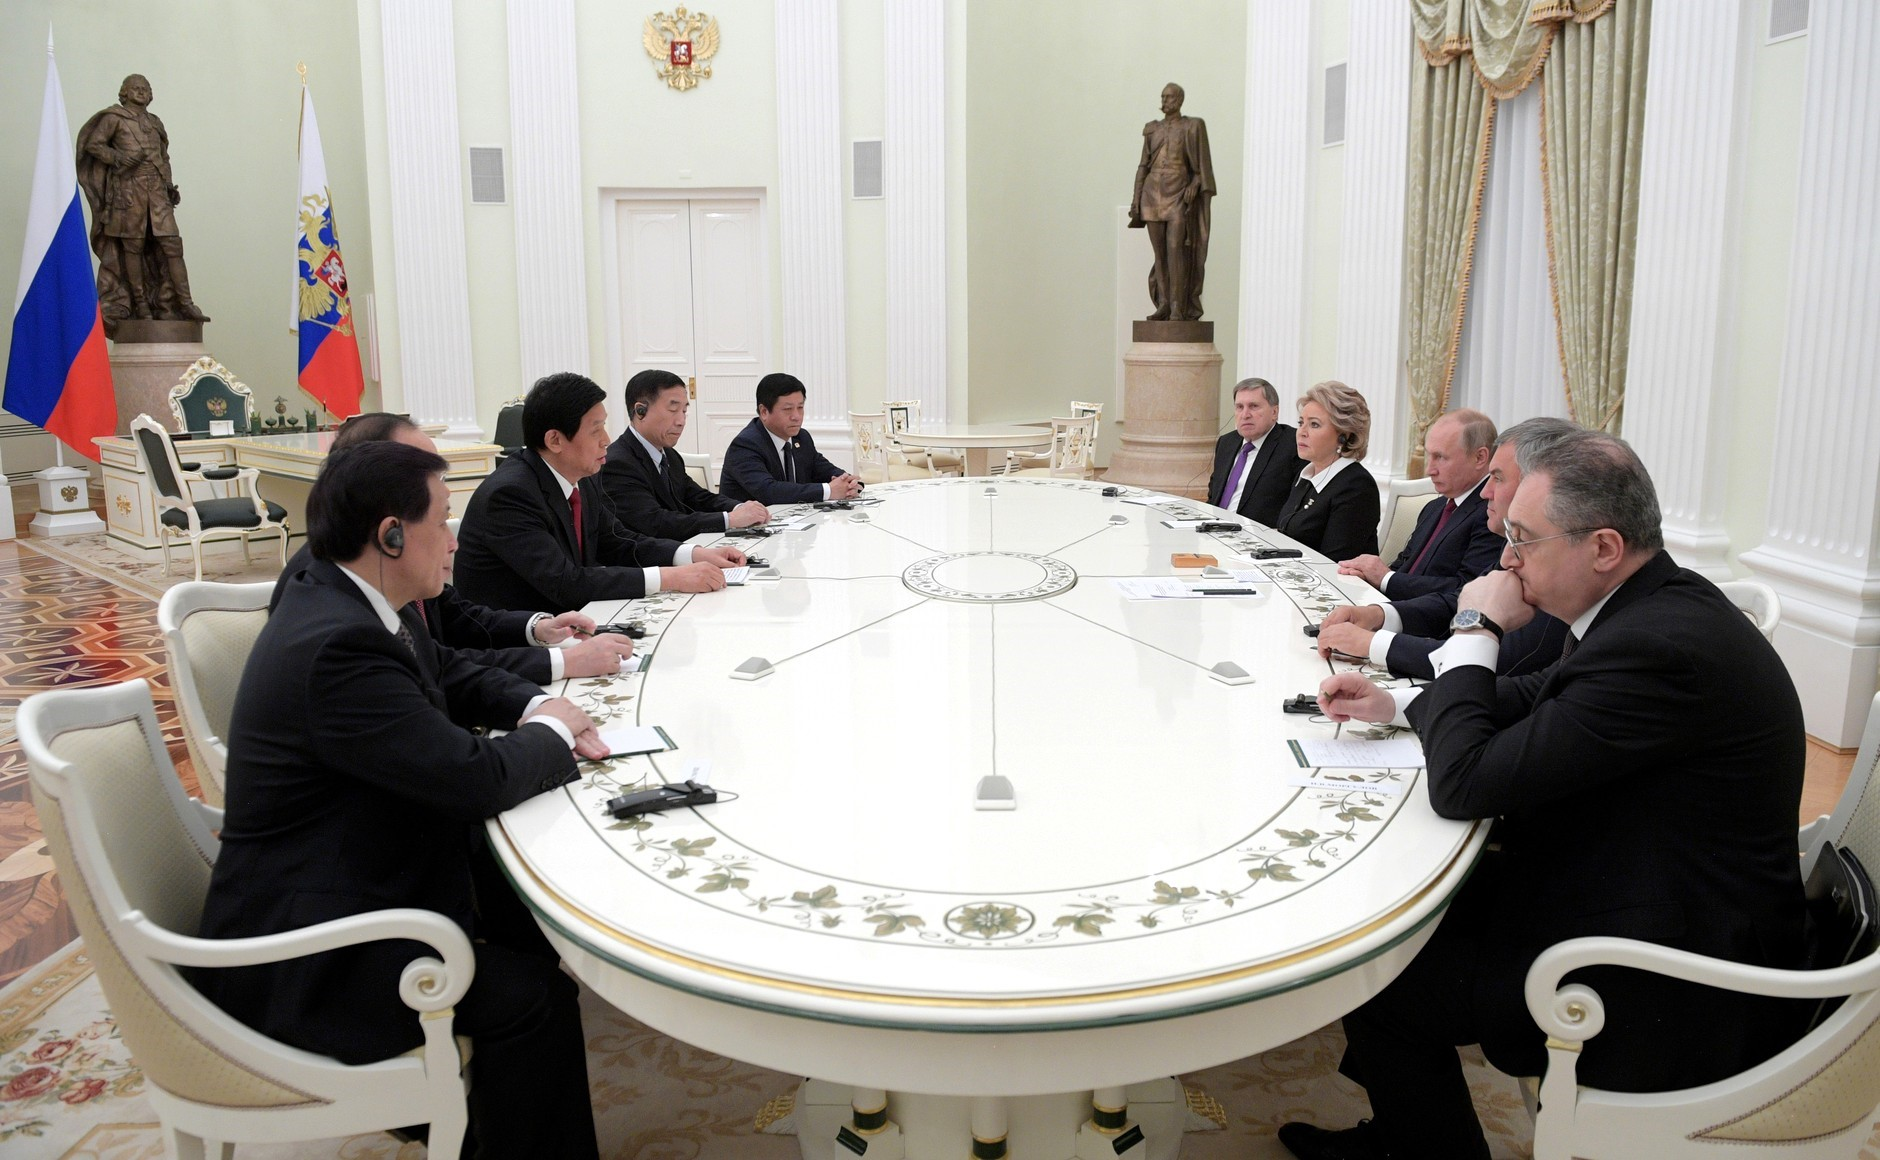 Putin Meets China's Parliament Chairman in the Kremlin